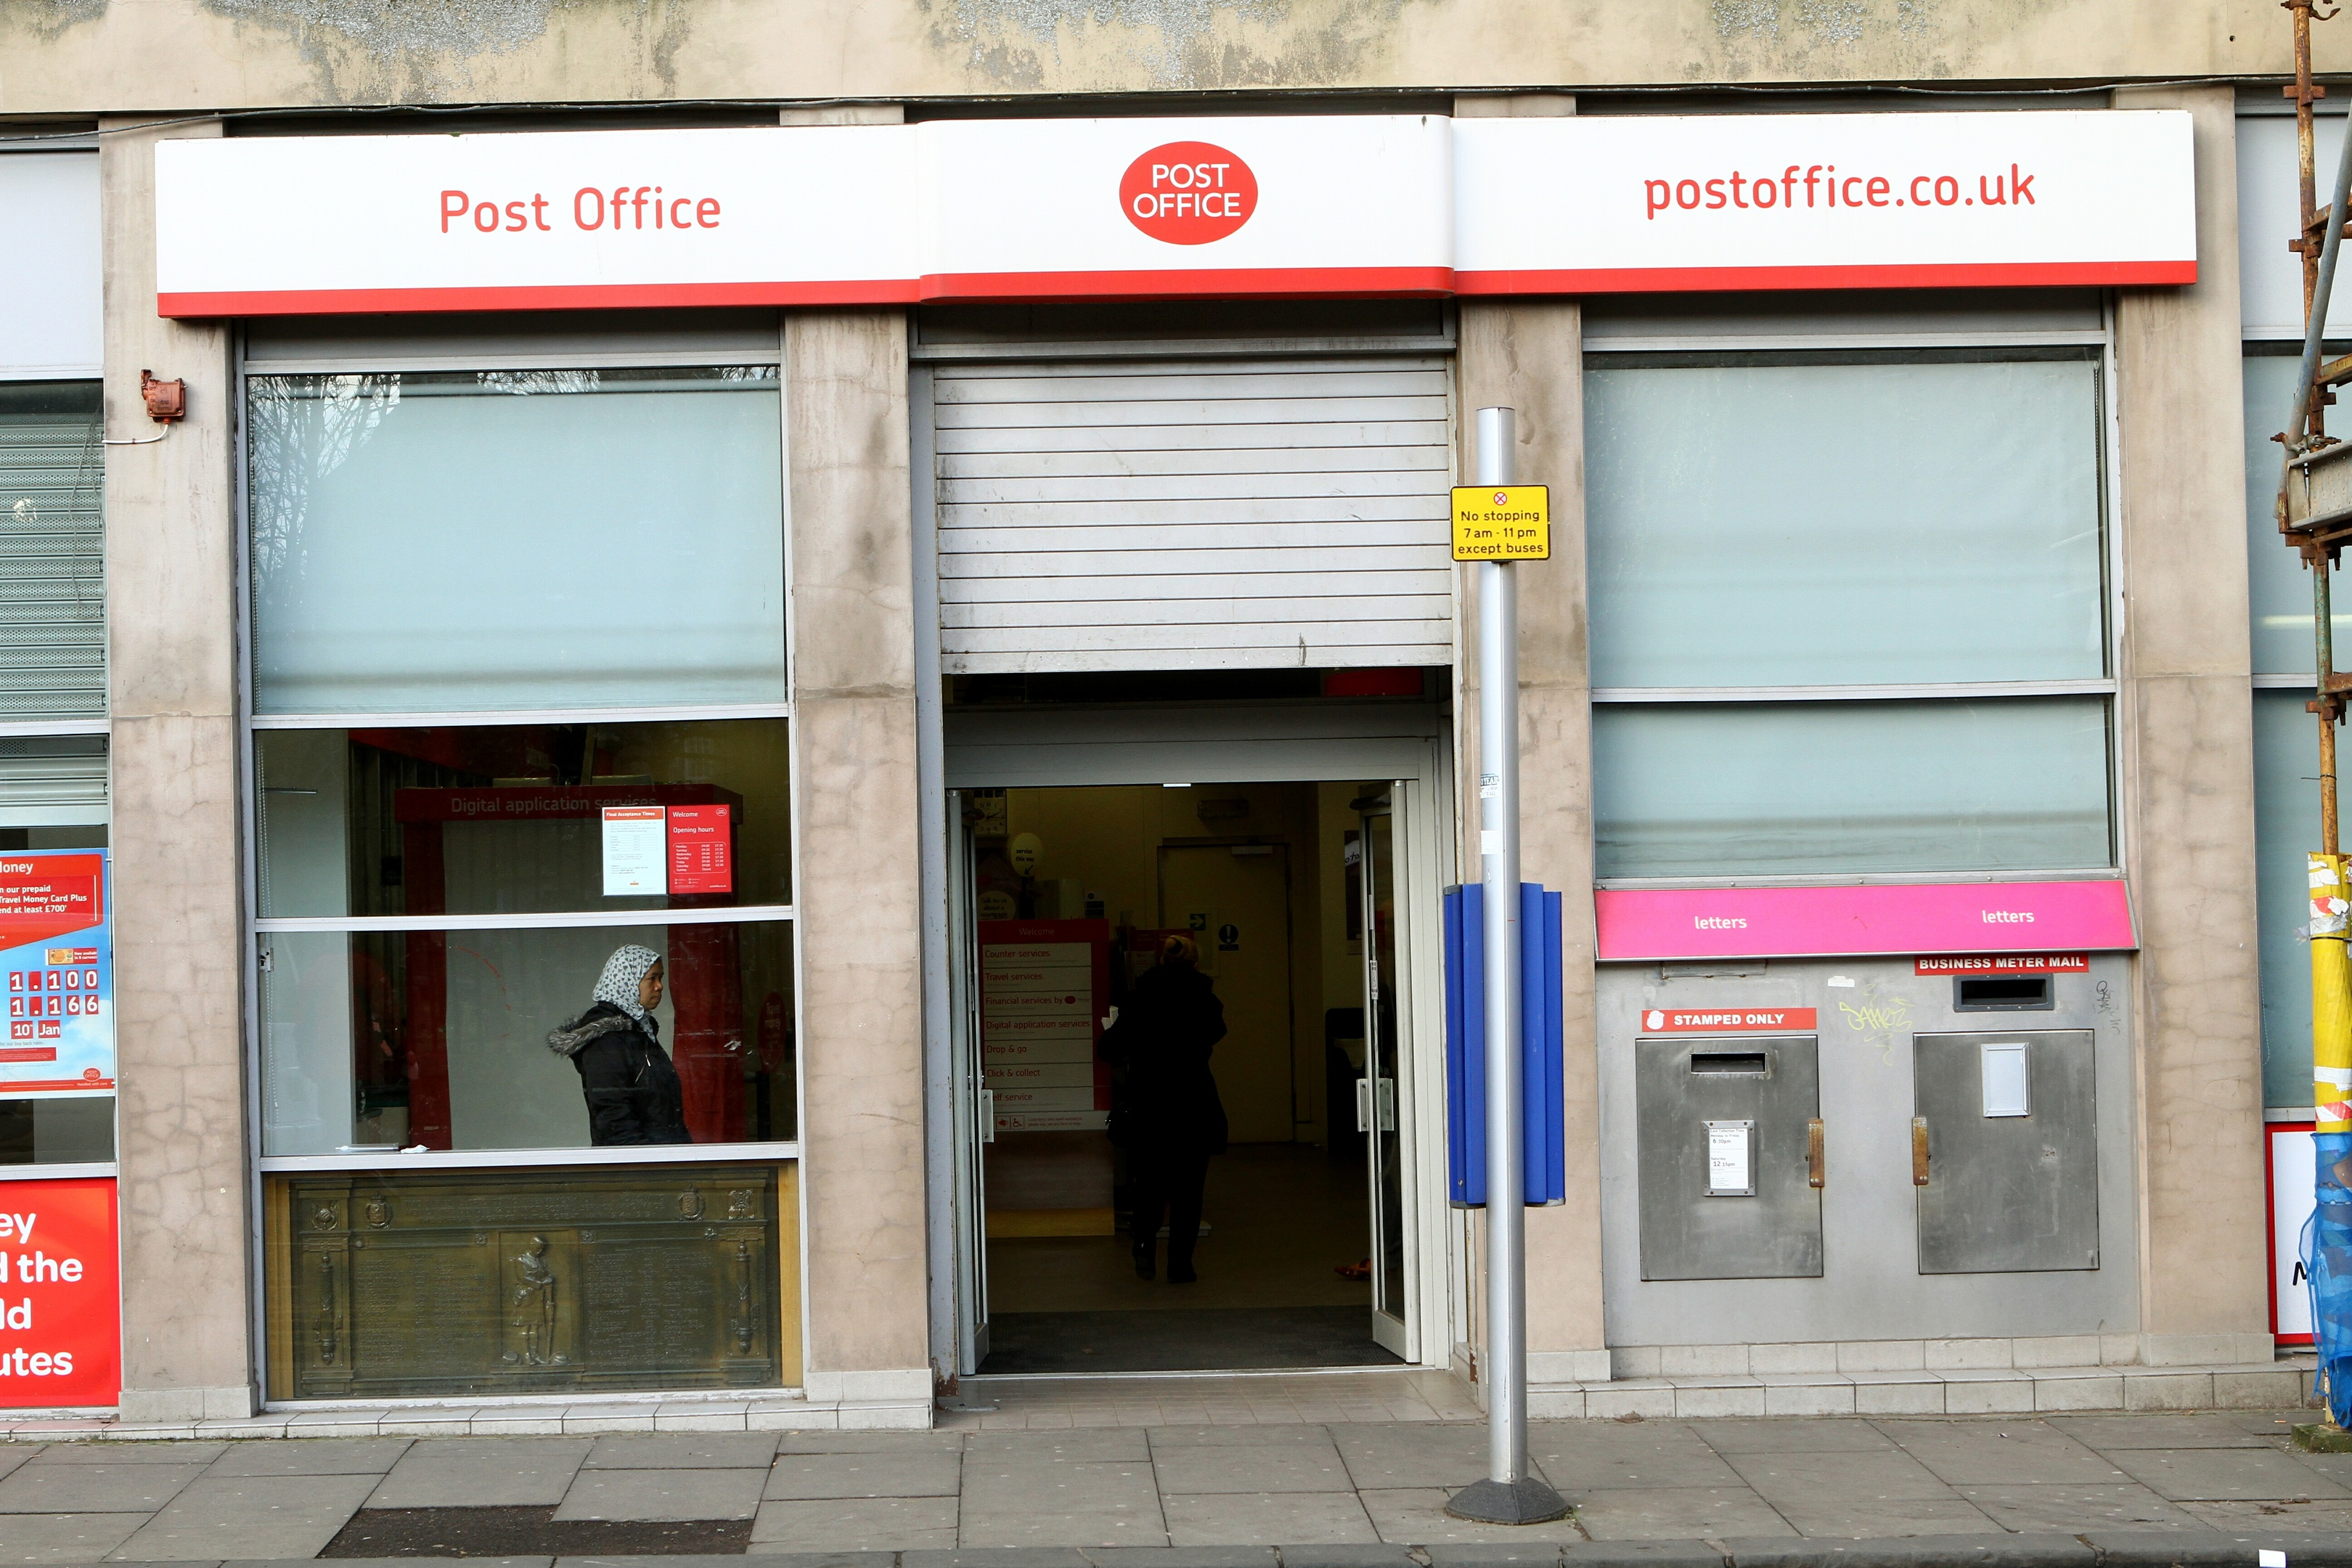 The Post Office at Meadowside.